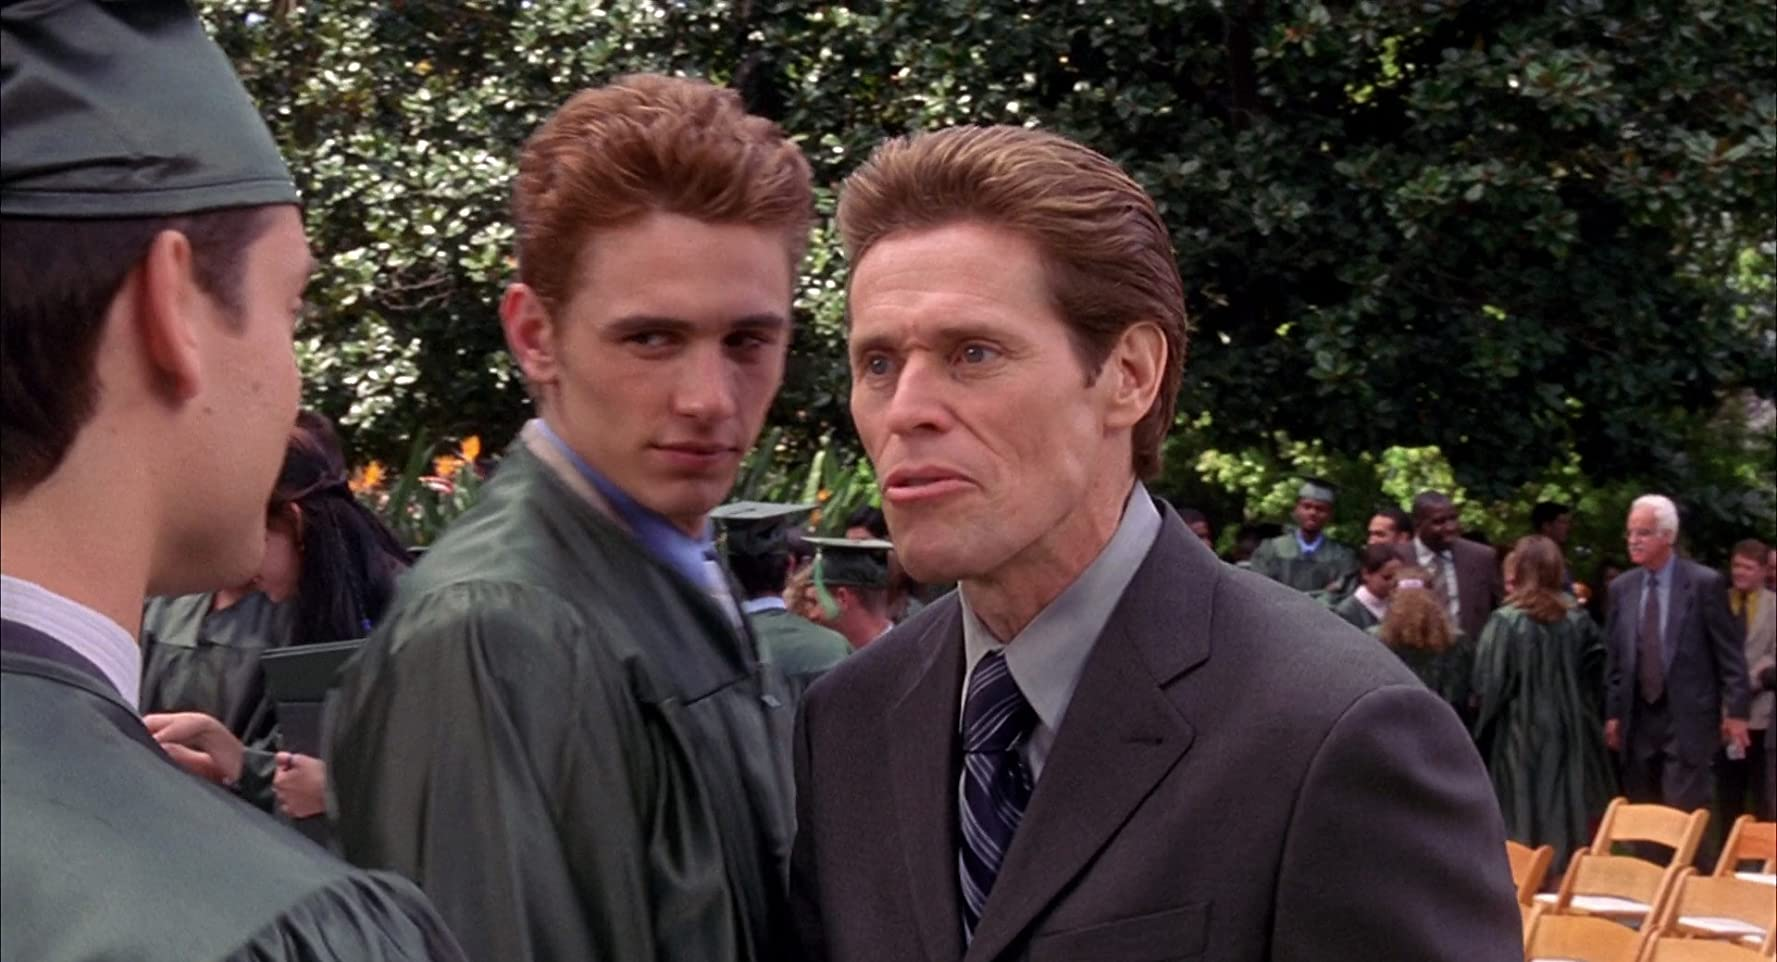 Willem Dafoe, Tobey Maguire, and James Franco in Spider-Man (2002)